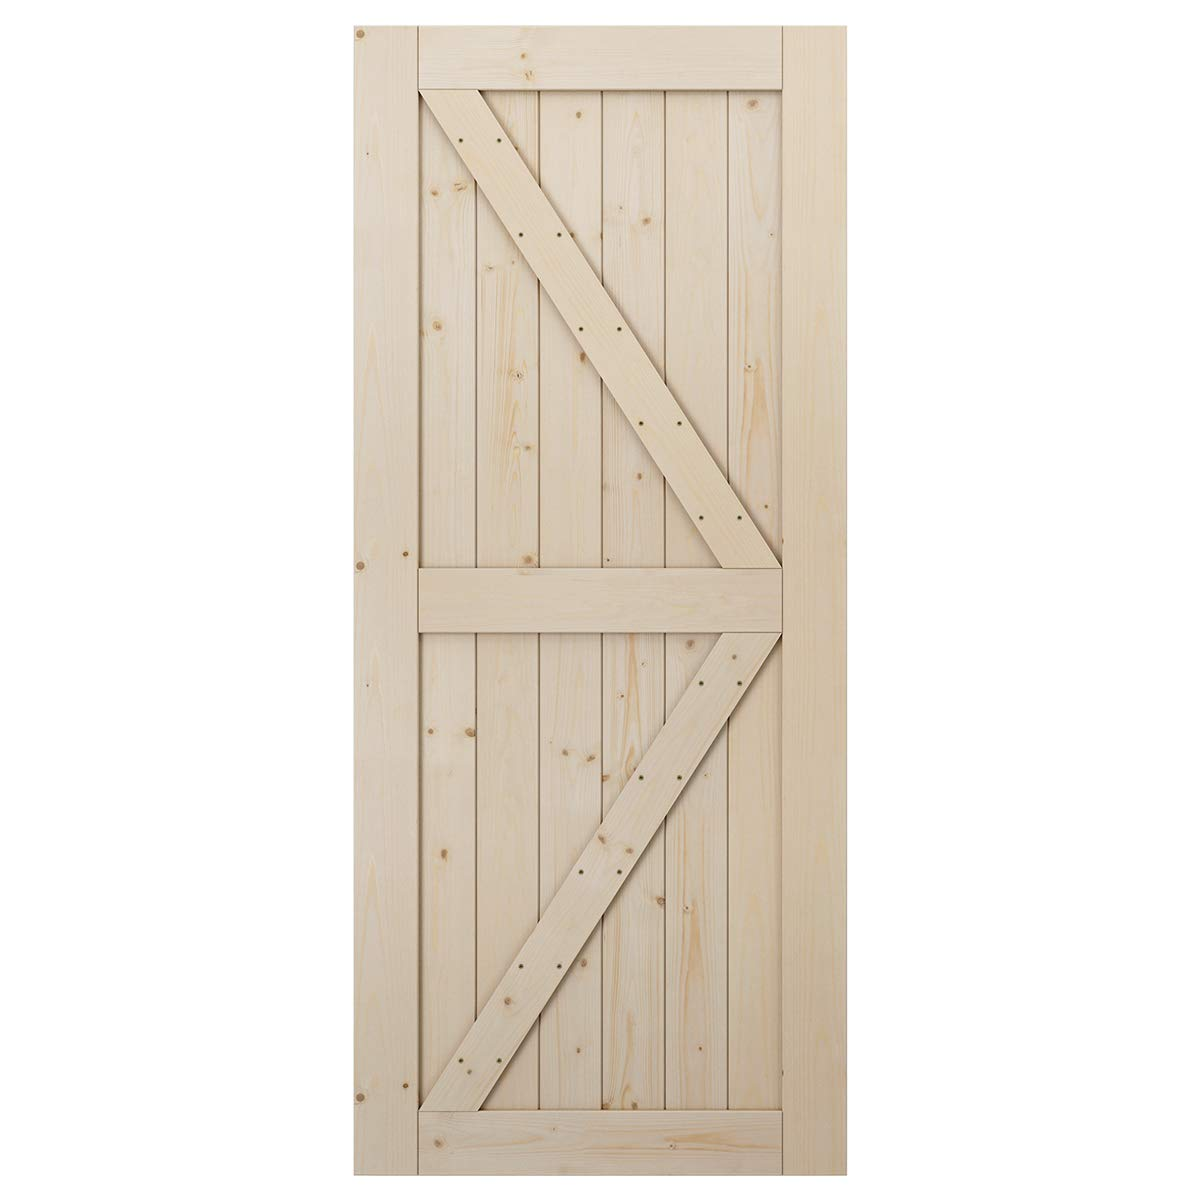 DIY Unfinished Panel Environmental Fit 6FT-6.6FT Track Easy Installation K-Frame LD Build 36in x 84in Sliding Barn Wood Door Slab Solid Nature Wood